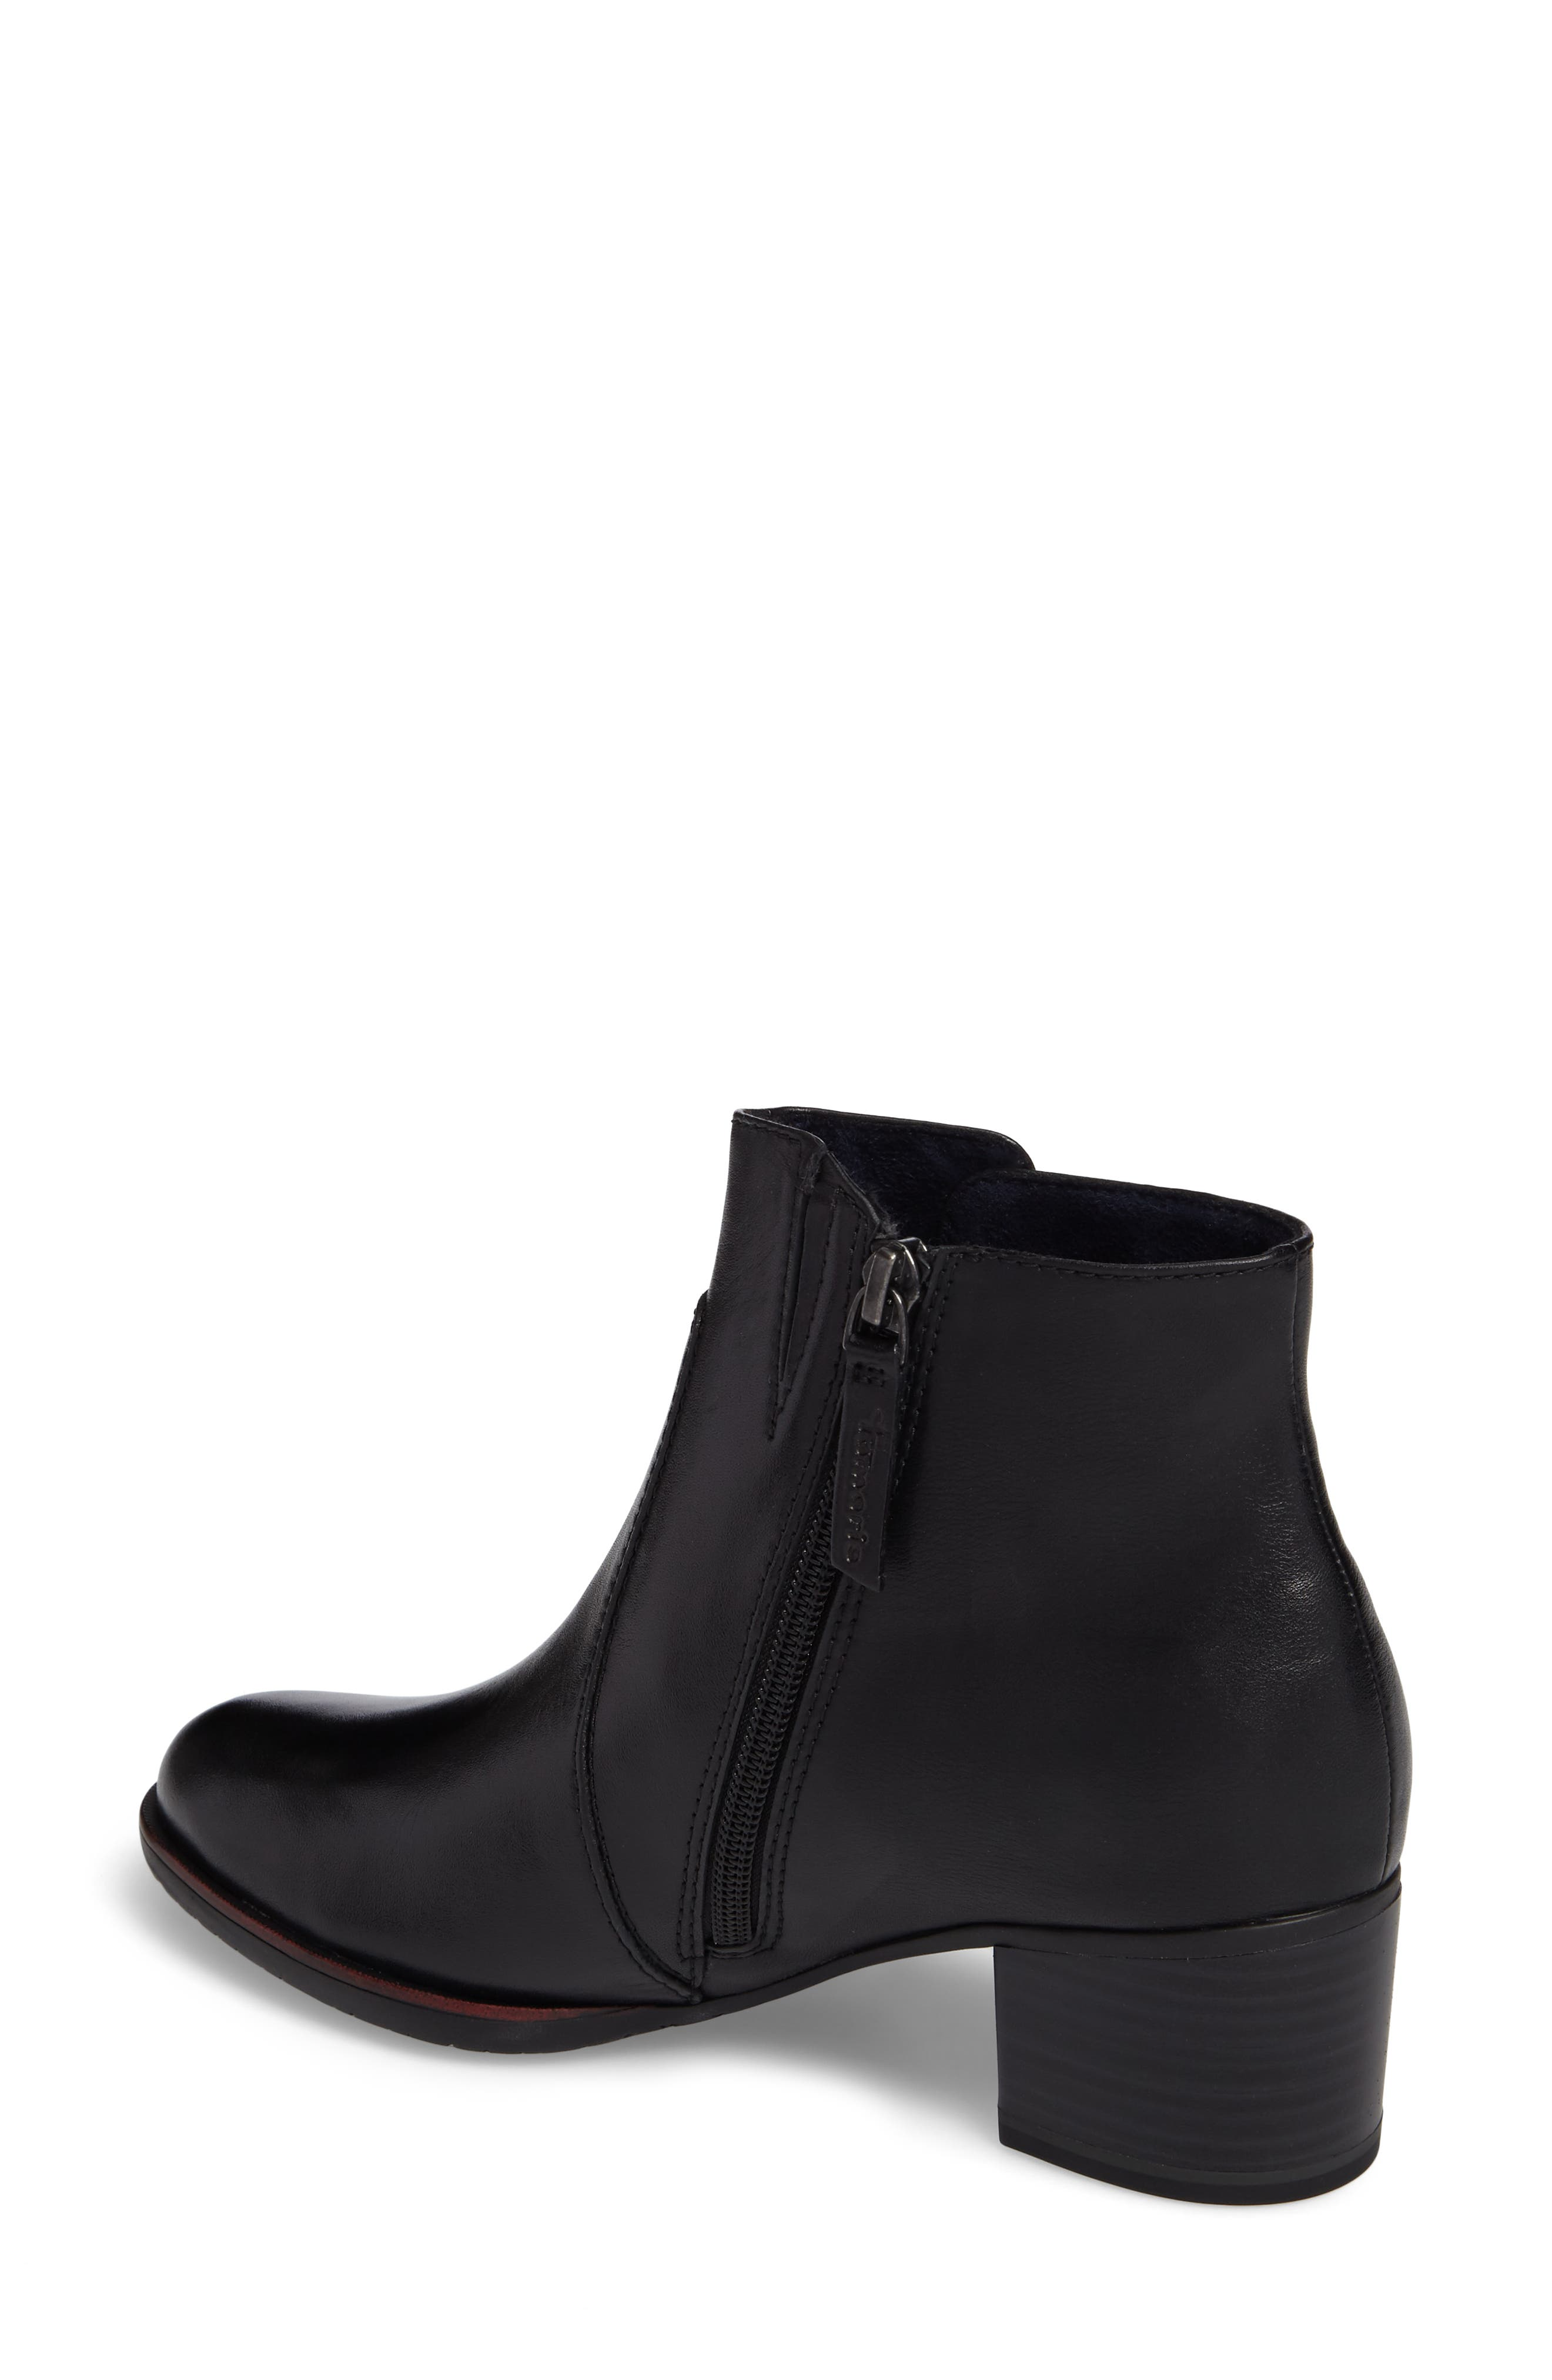 Akaria Mixed Finish Bootie,                             Alternate thumbnail 2, color,                             004